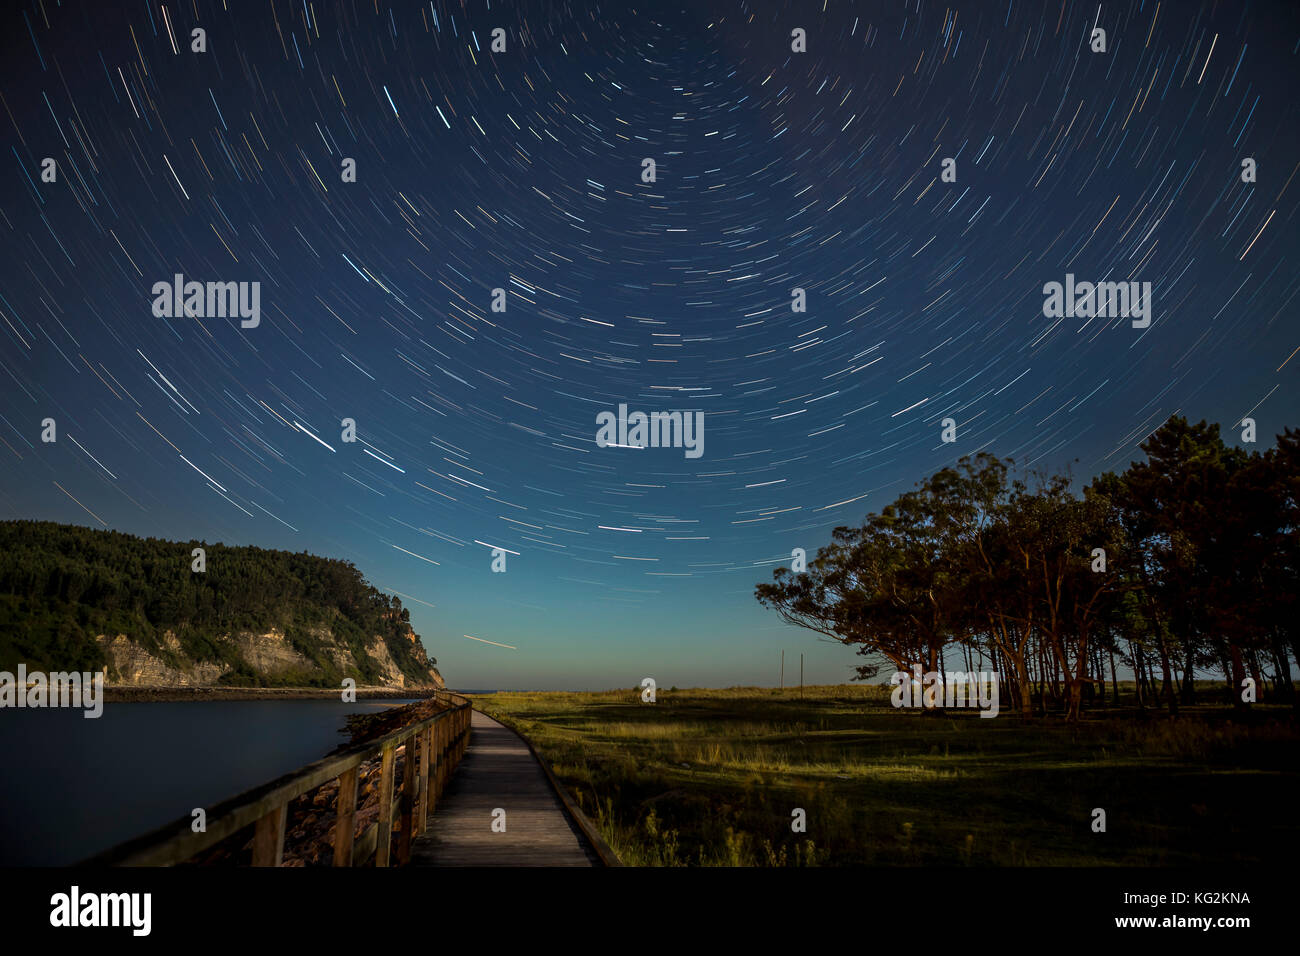 Star trails over a river with a path and a forest Stock Photo